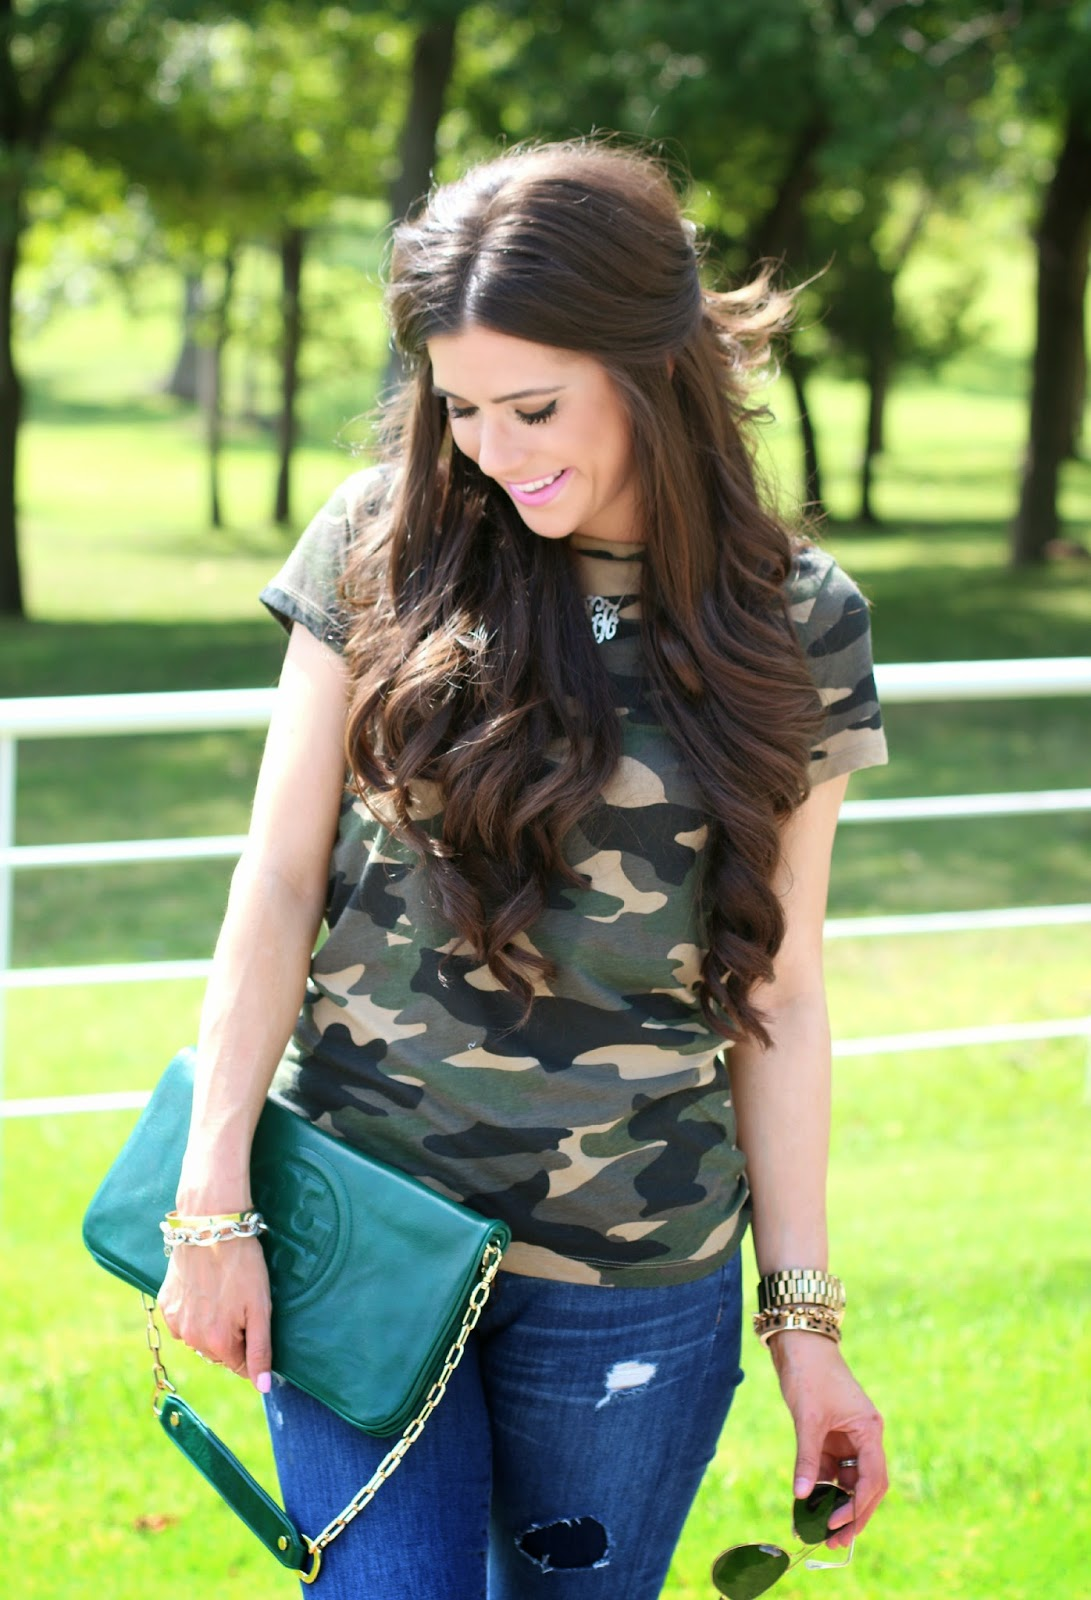 camo tee shirt, camo fashion, tory burch clutch, green tory burch clutch, ray ban aviators, emily gemma, emily gemma blog, the sweetest thing blog, jcrew jeans